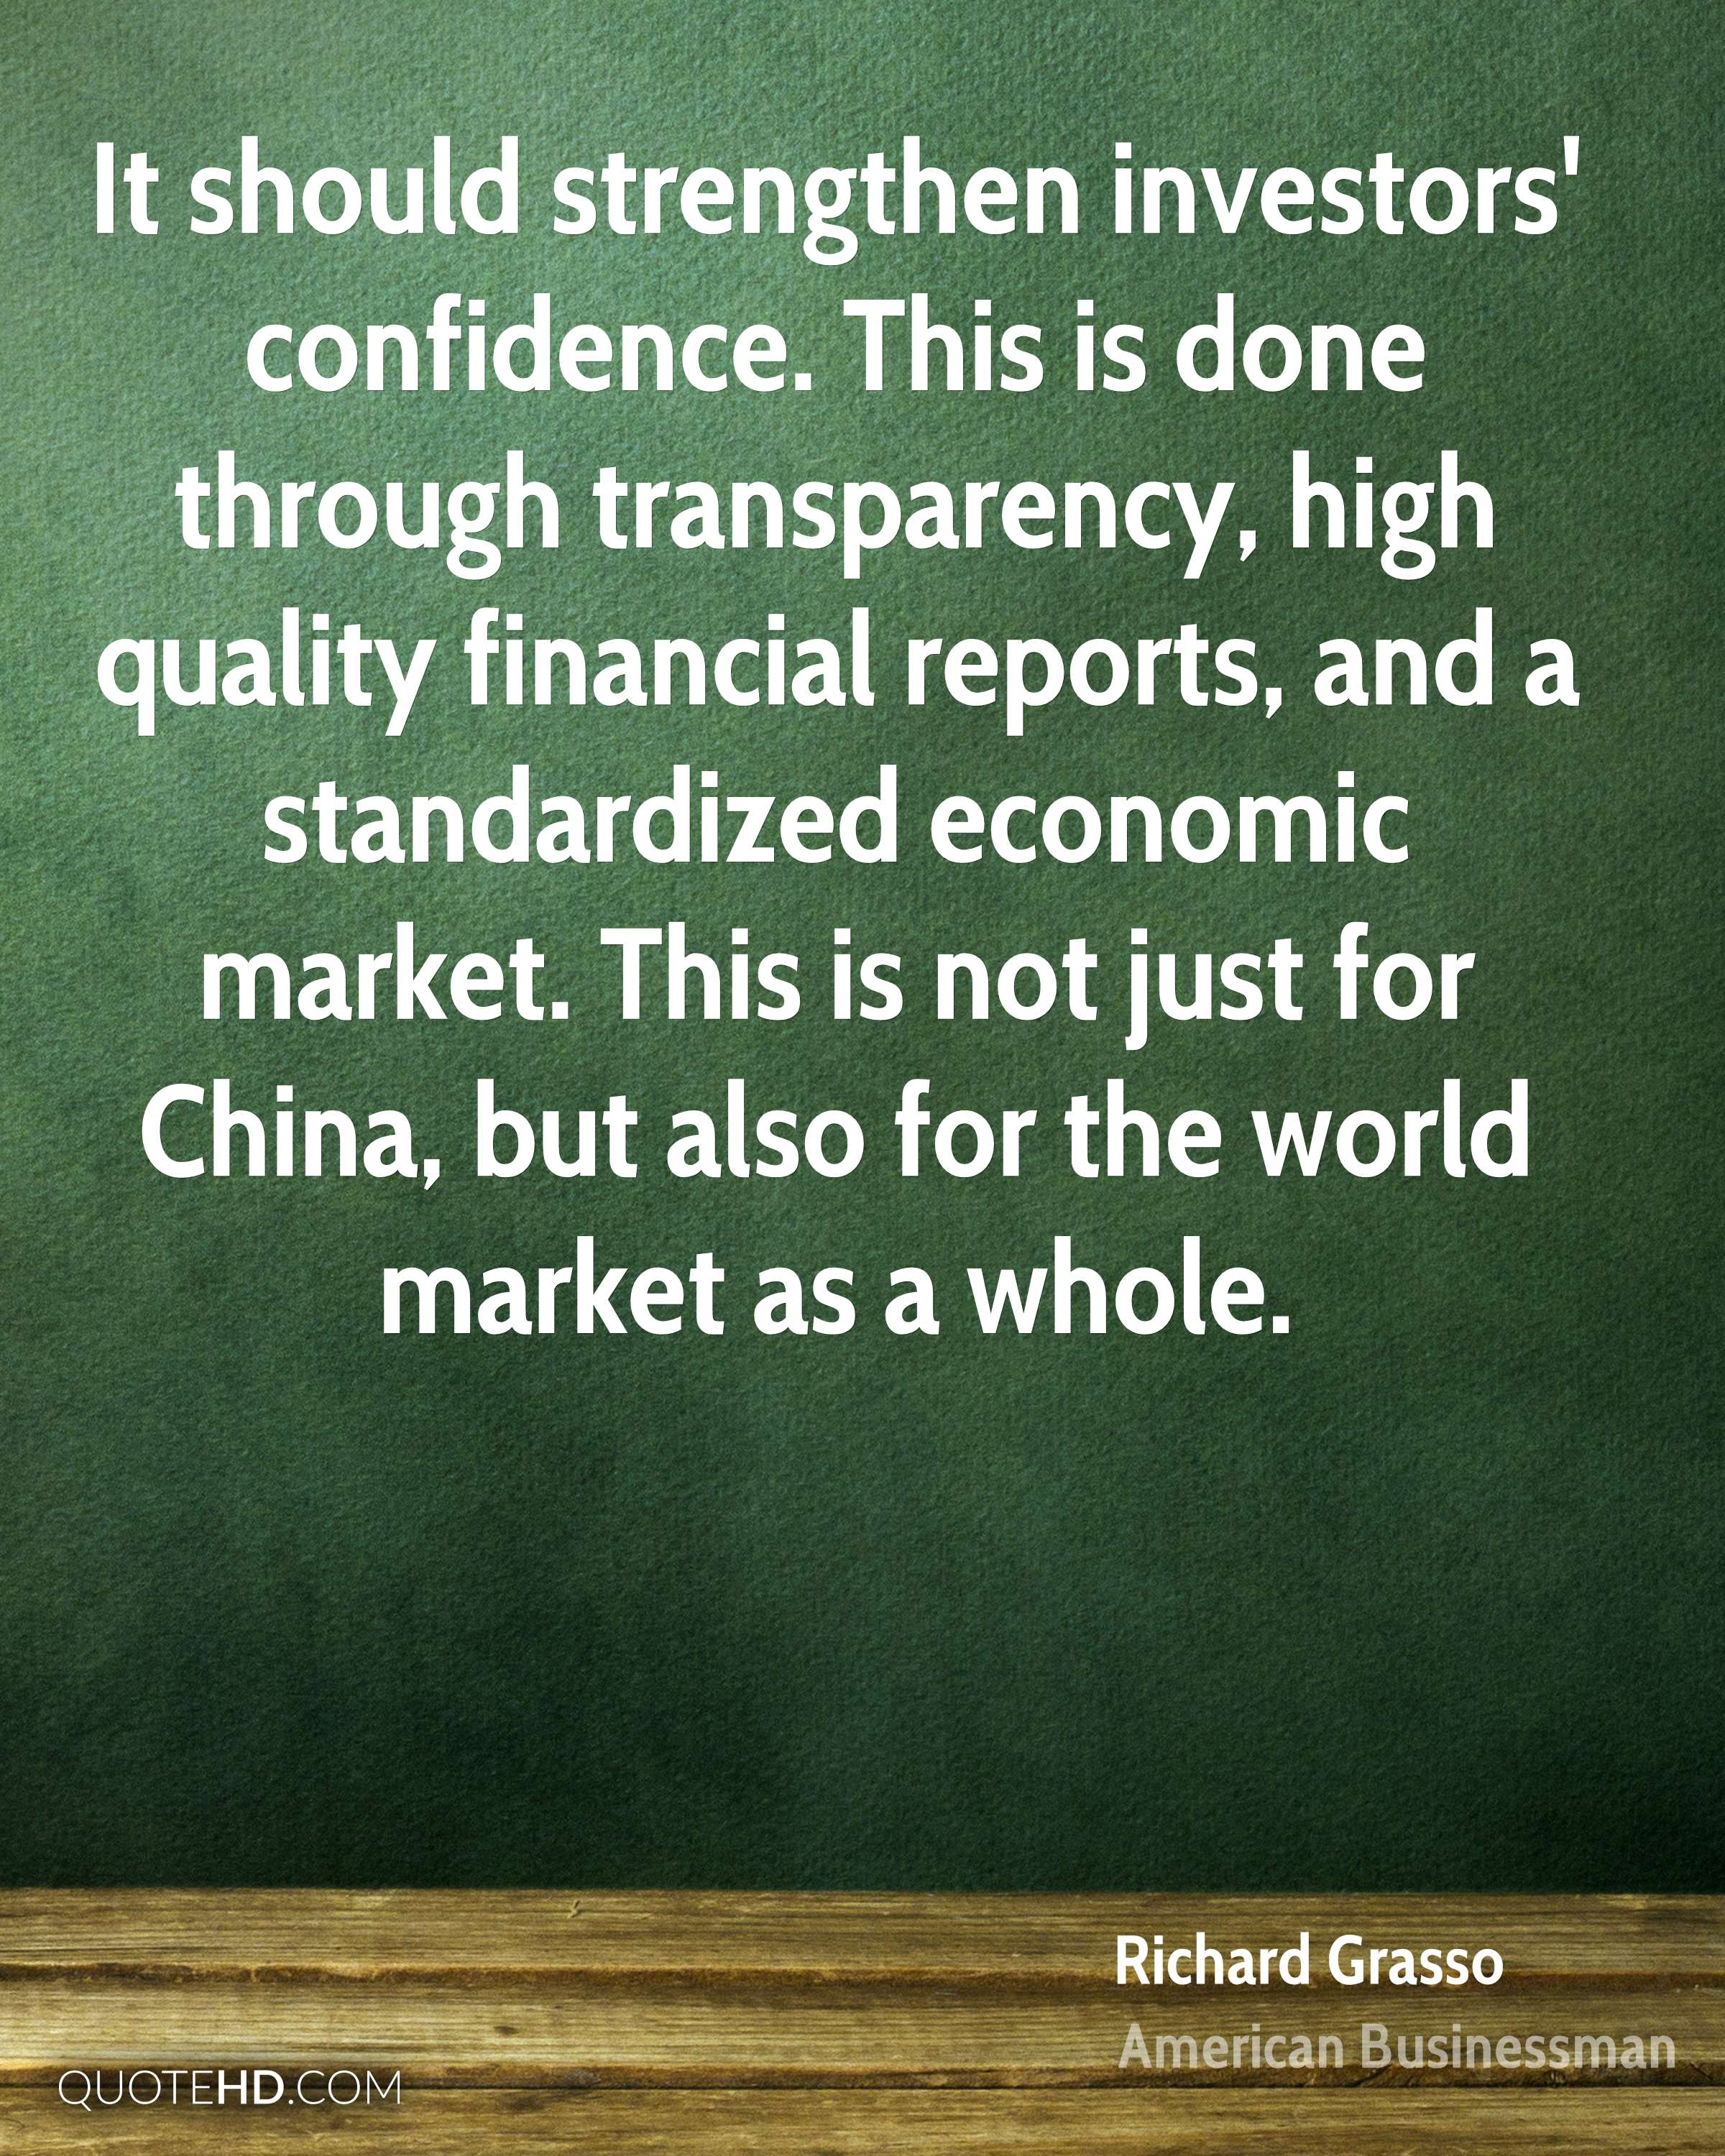 It should strengthen investors' confidence. This is done through transparency, high quality financial reports, and a standardized economic market. This is not just for China, but also for the world market as a whole.